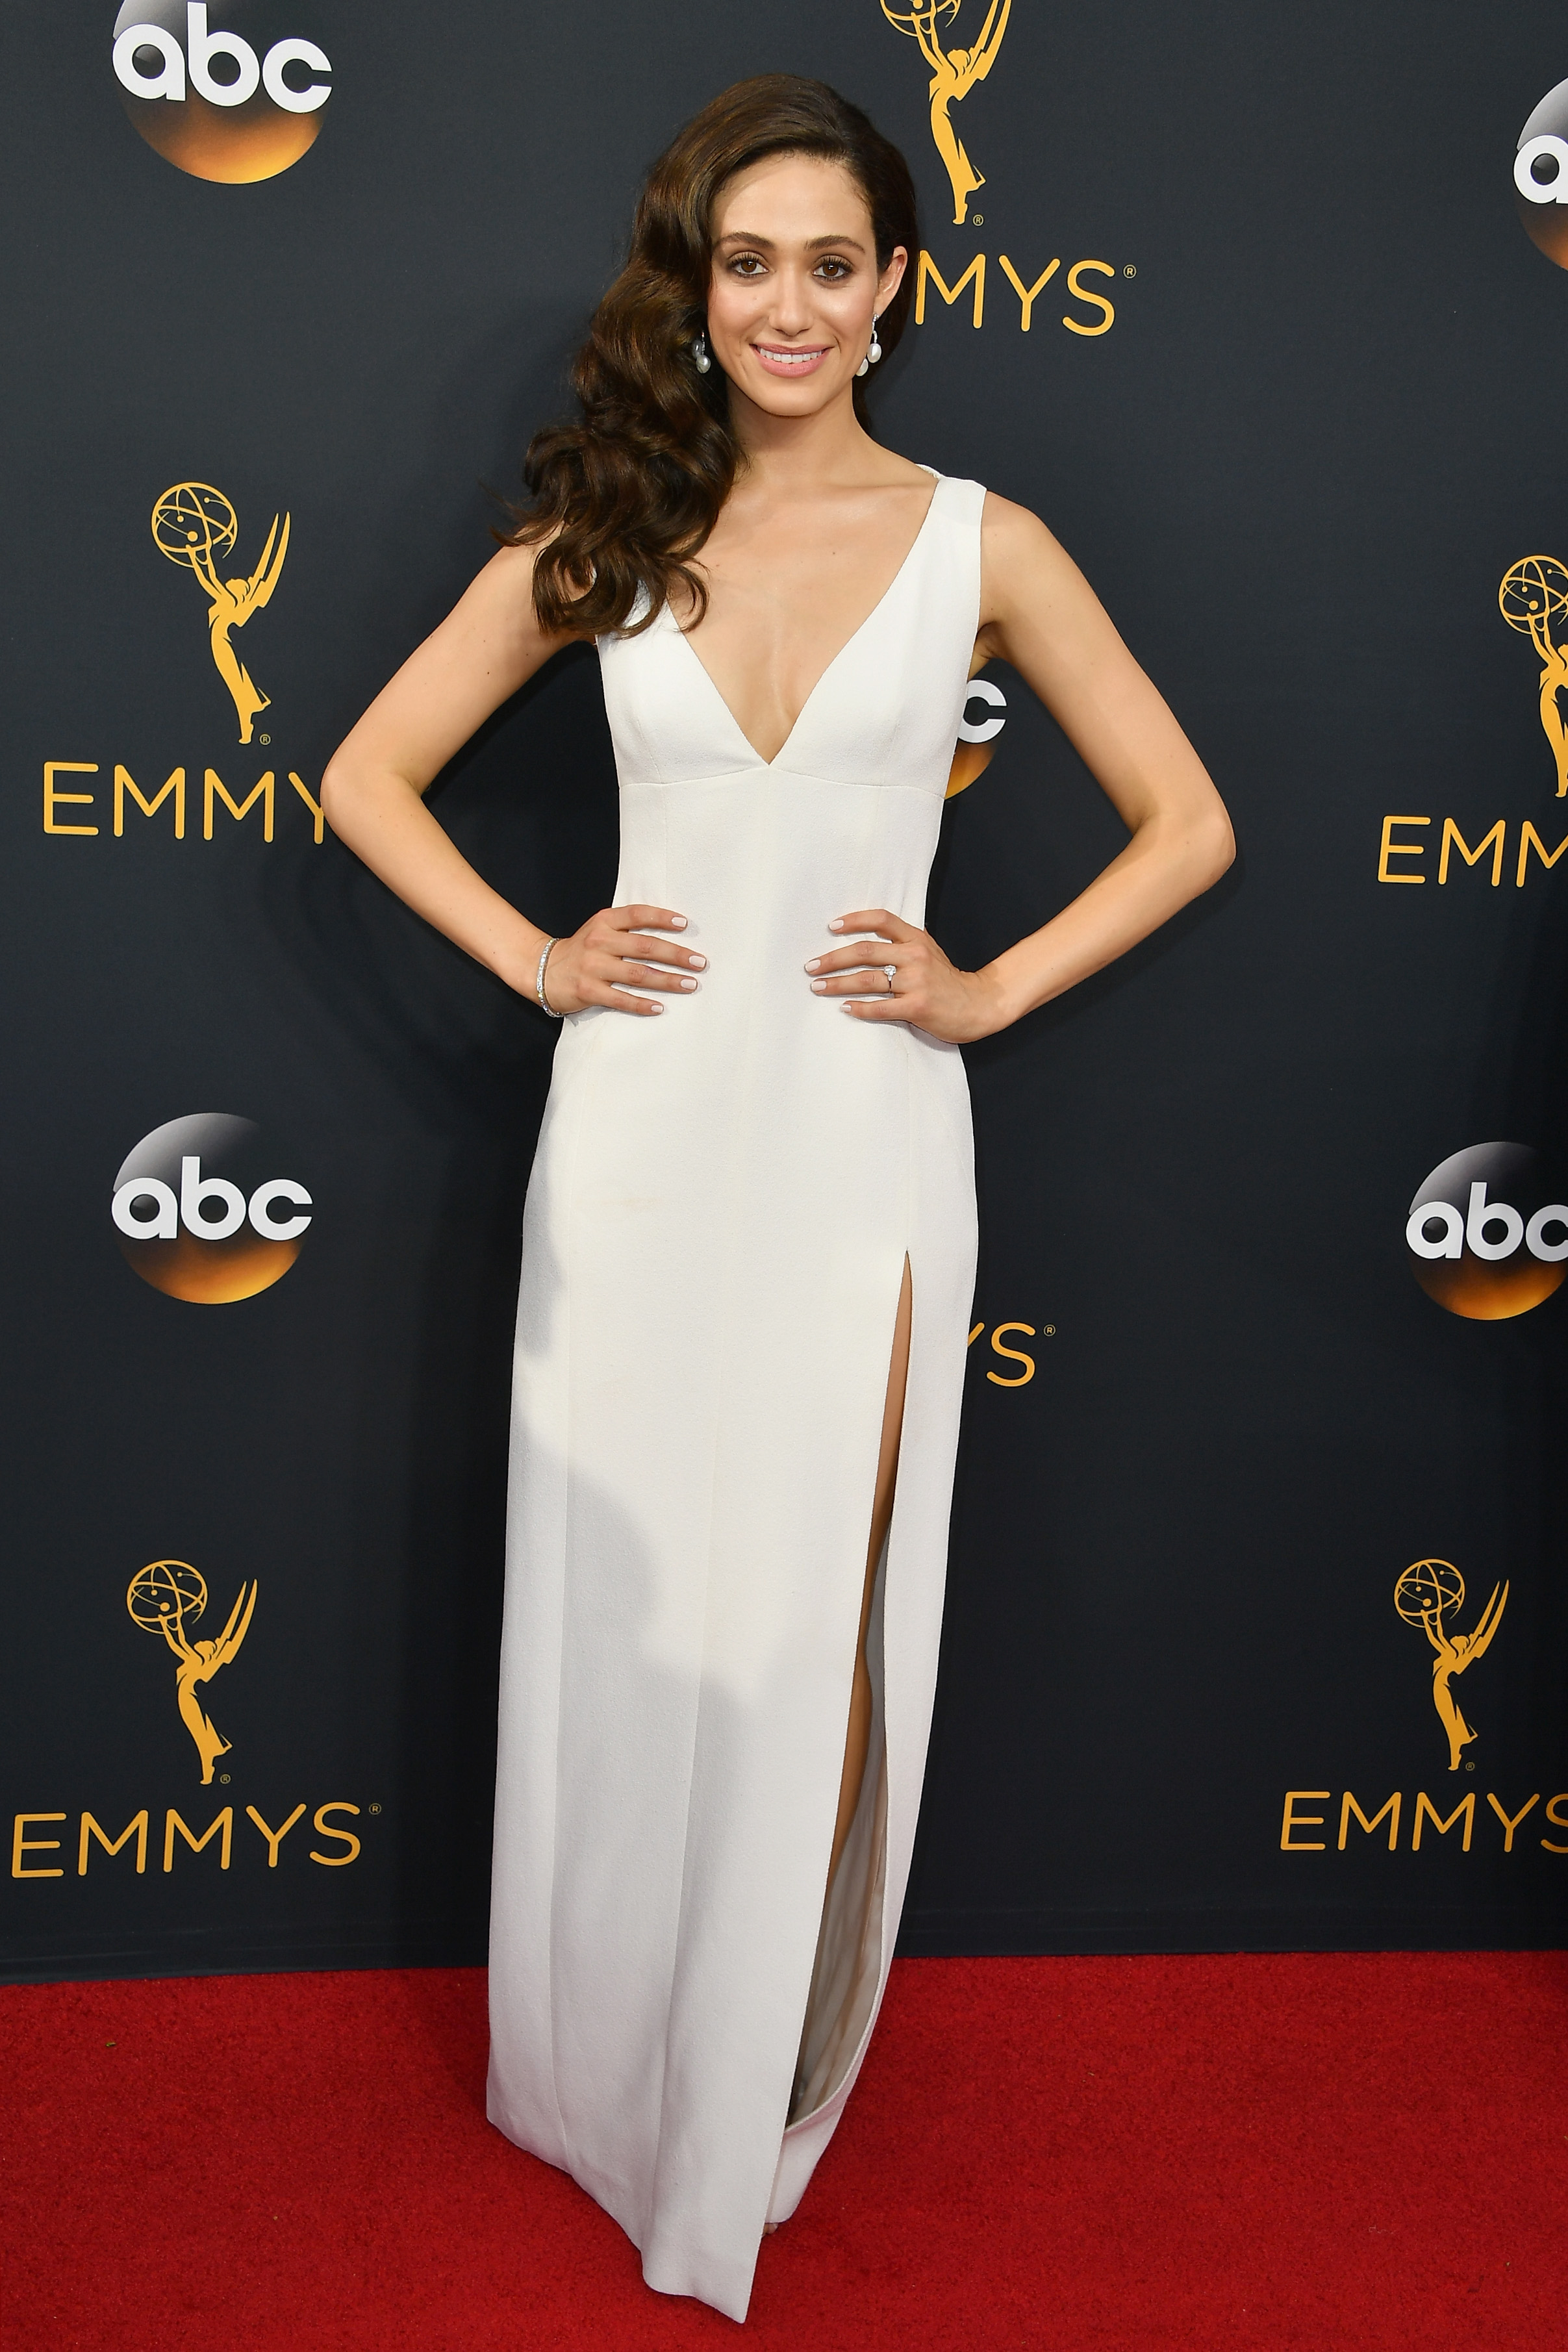 Emmy Rossum arrives at the 68th Annual Primetime Emmy Awards at Microsoft Theater on Sept. 18, 2016 in Los Angeles.